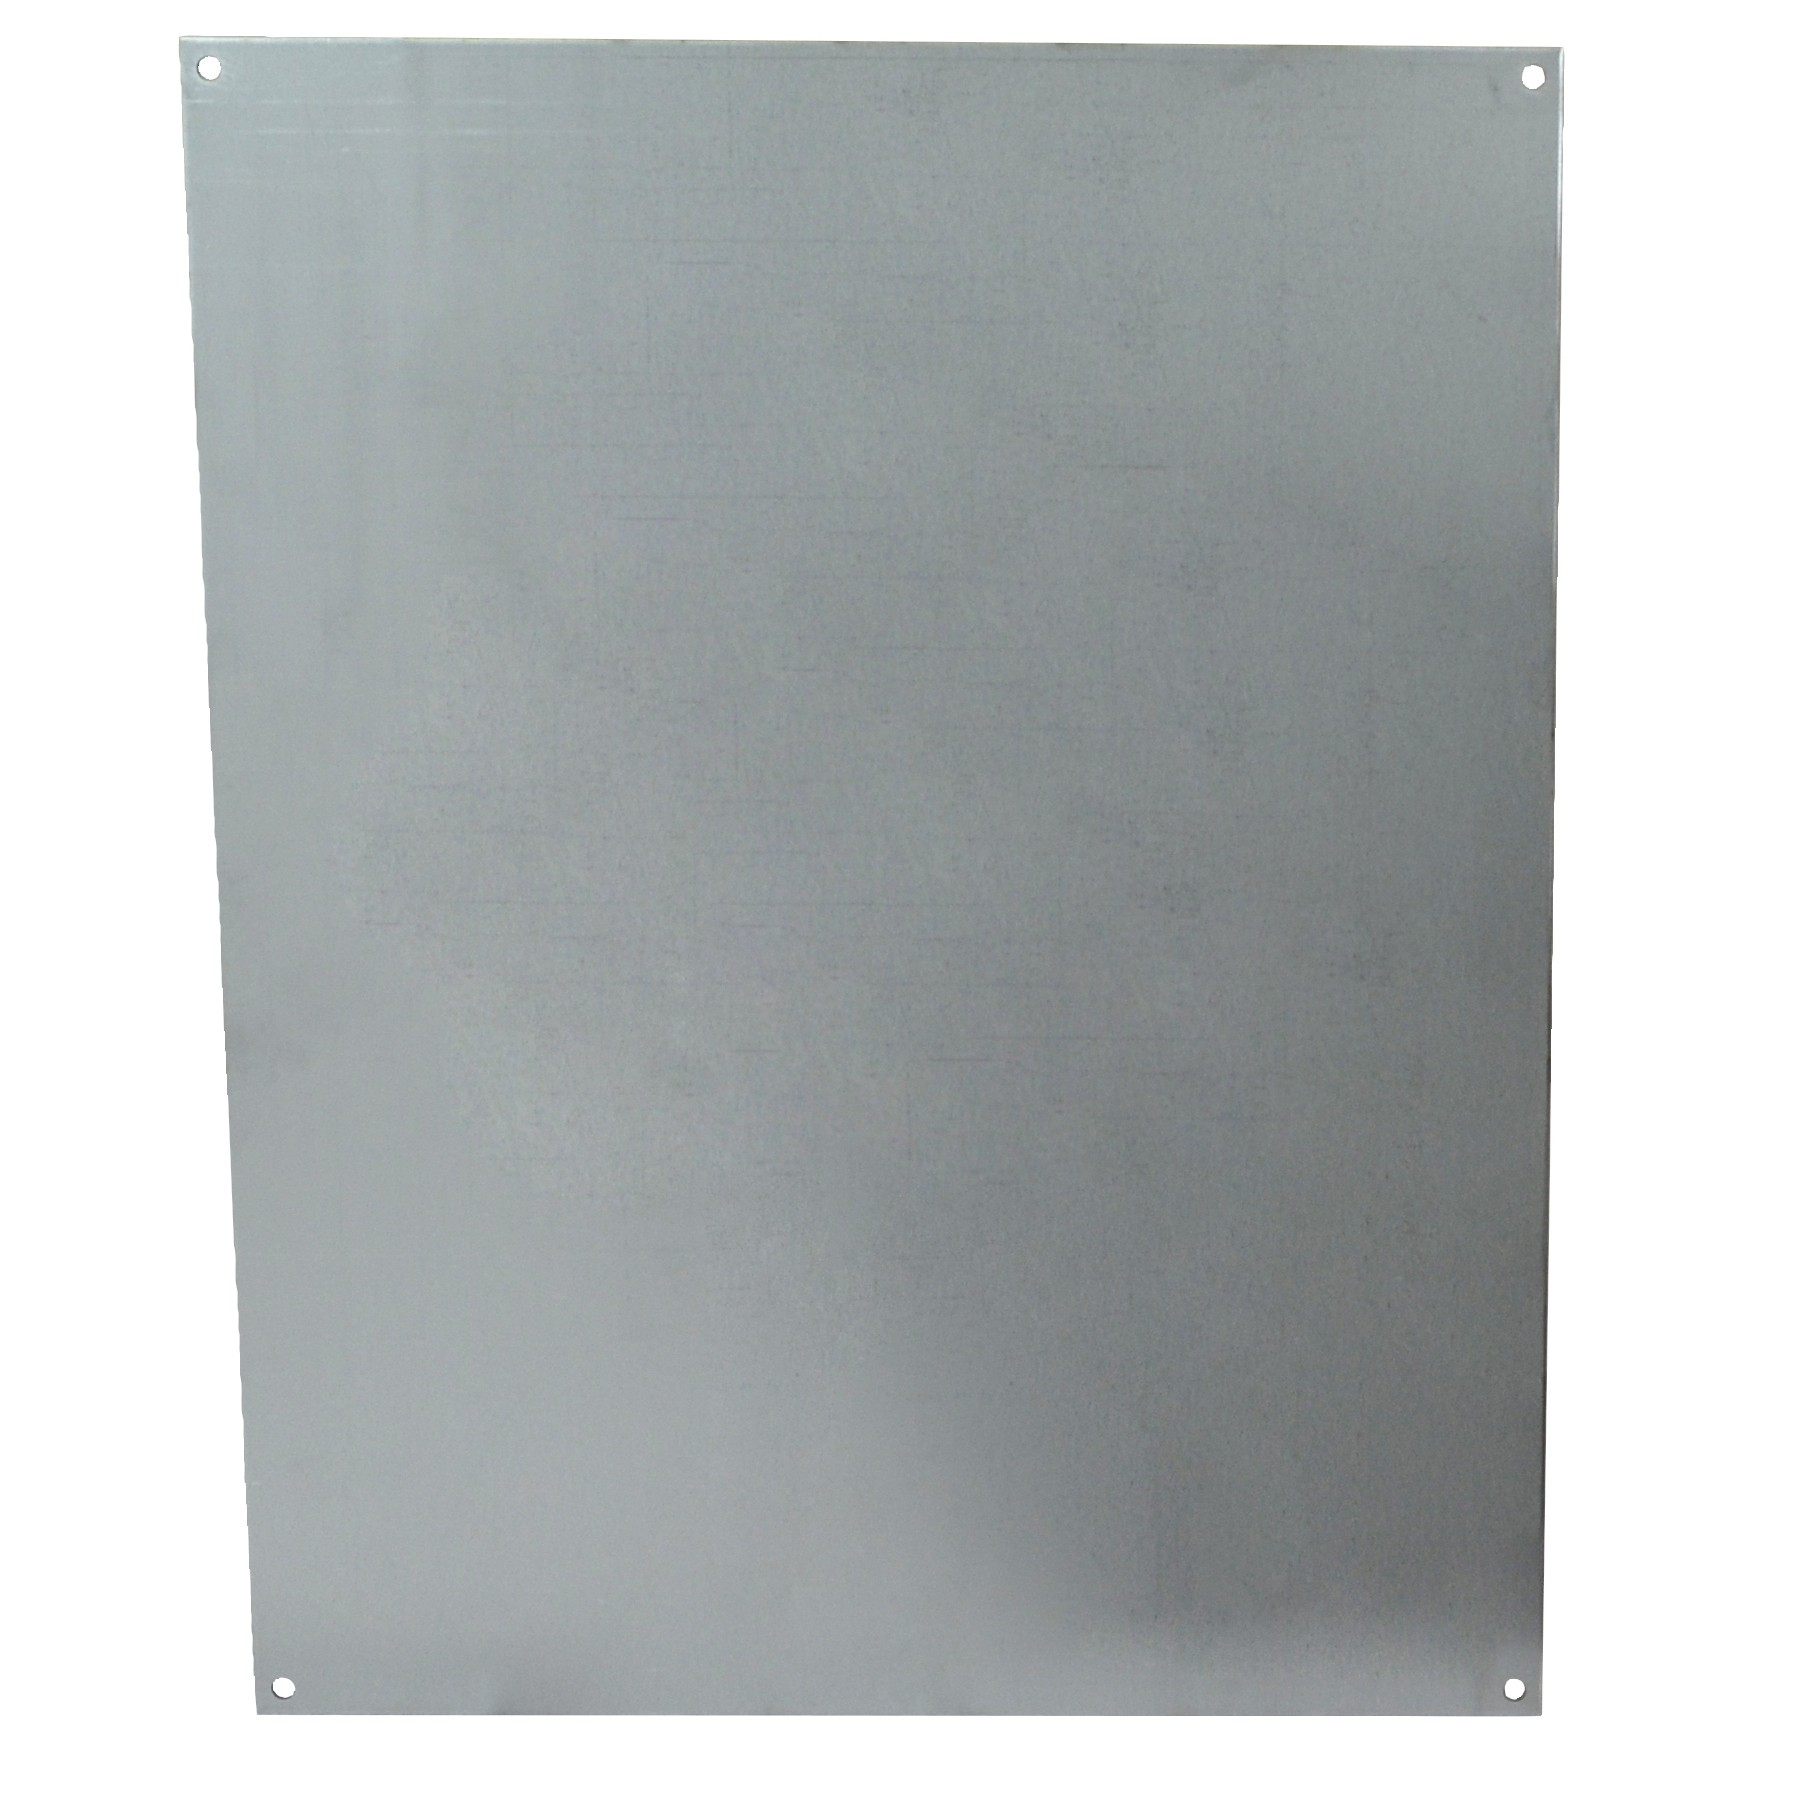 "Galvanized Back Panel for 20"" x 16"" Enclosures"